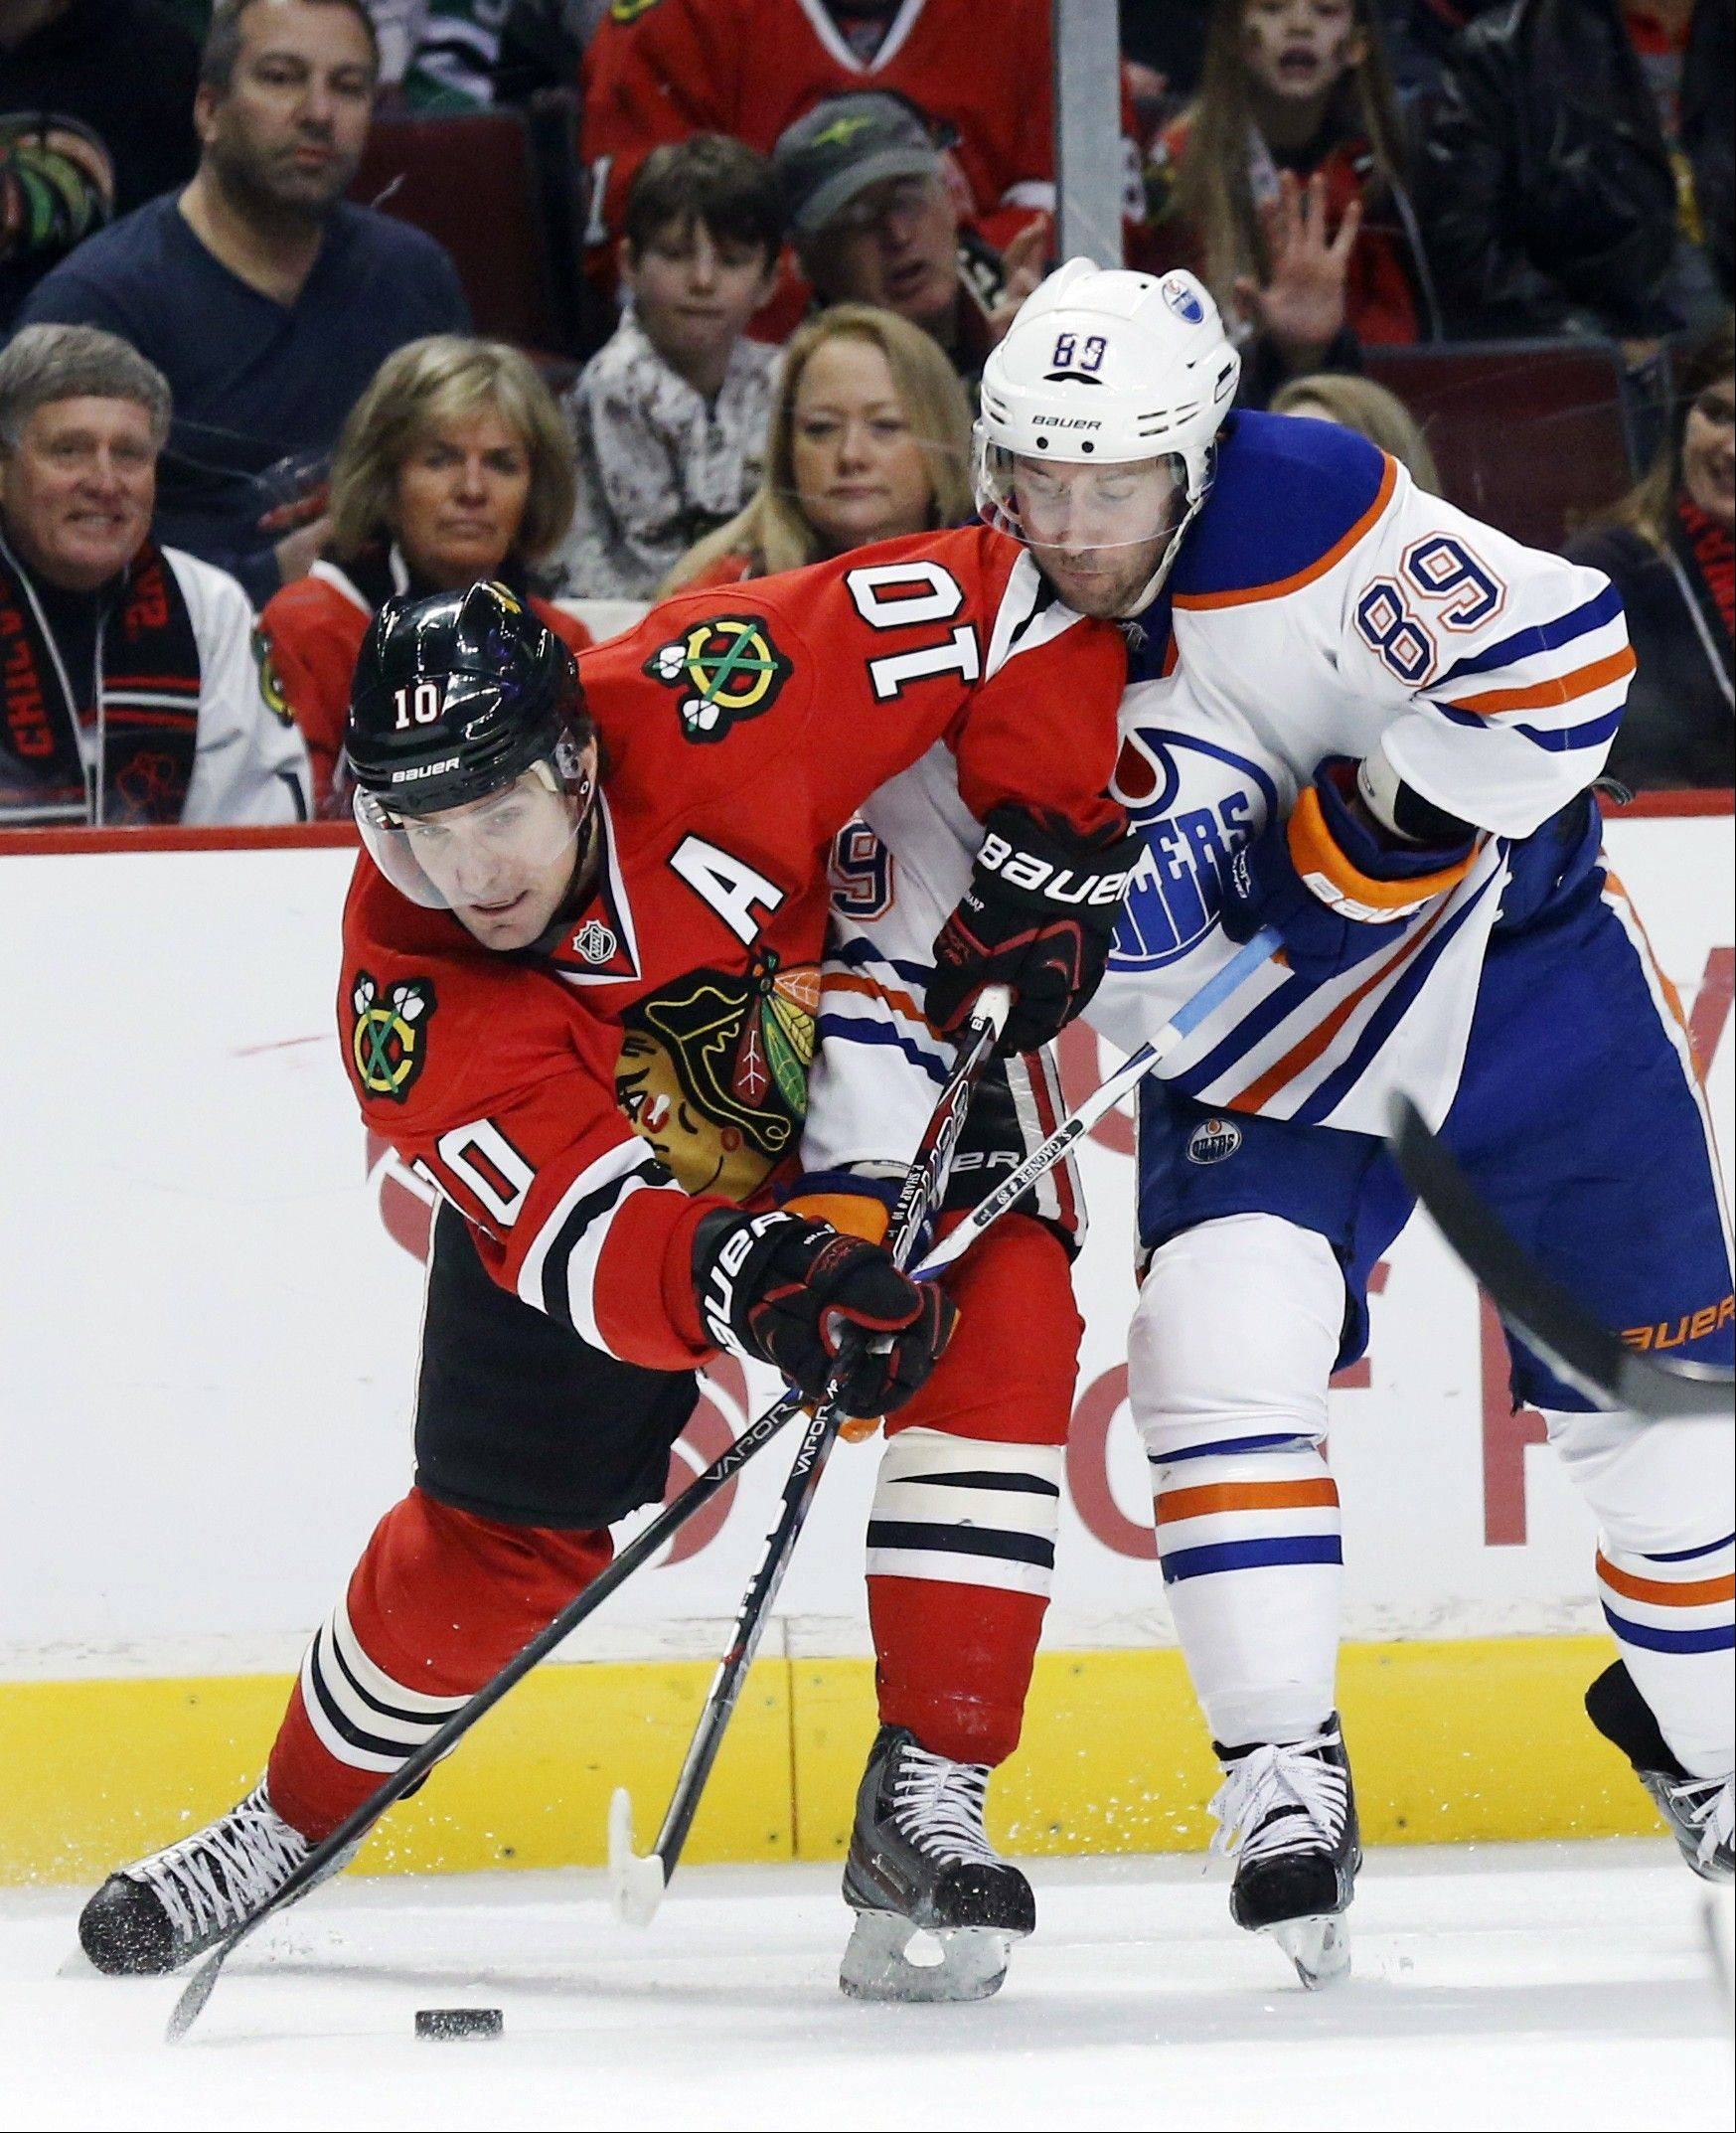 Chicago Blackhawks center Patrick Sharp battles Edmonton Oilers center Sam Gagner for a loose puck during the first period.